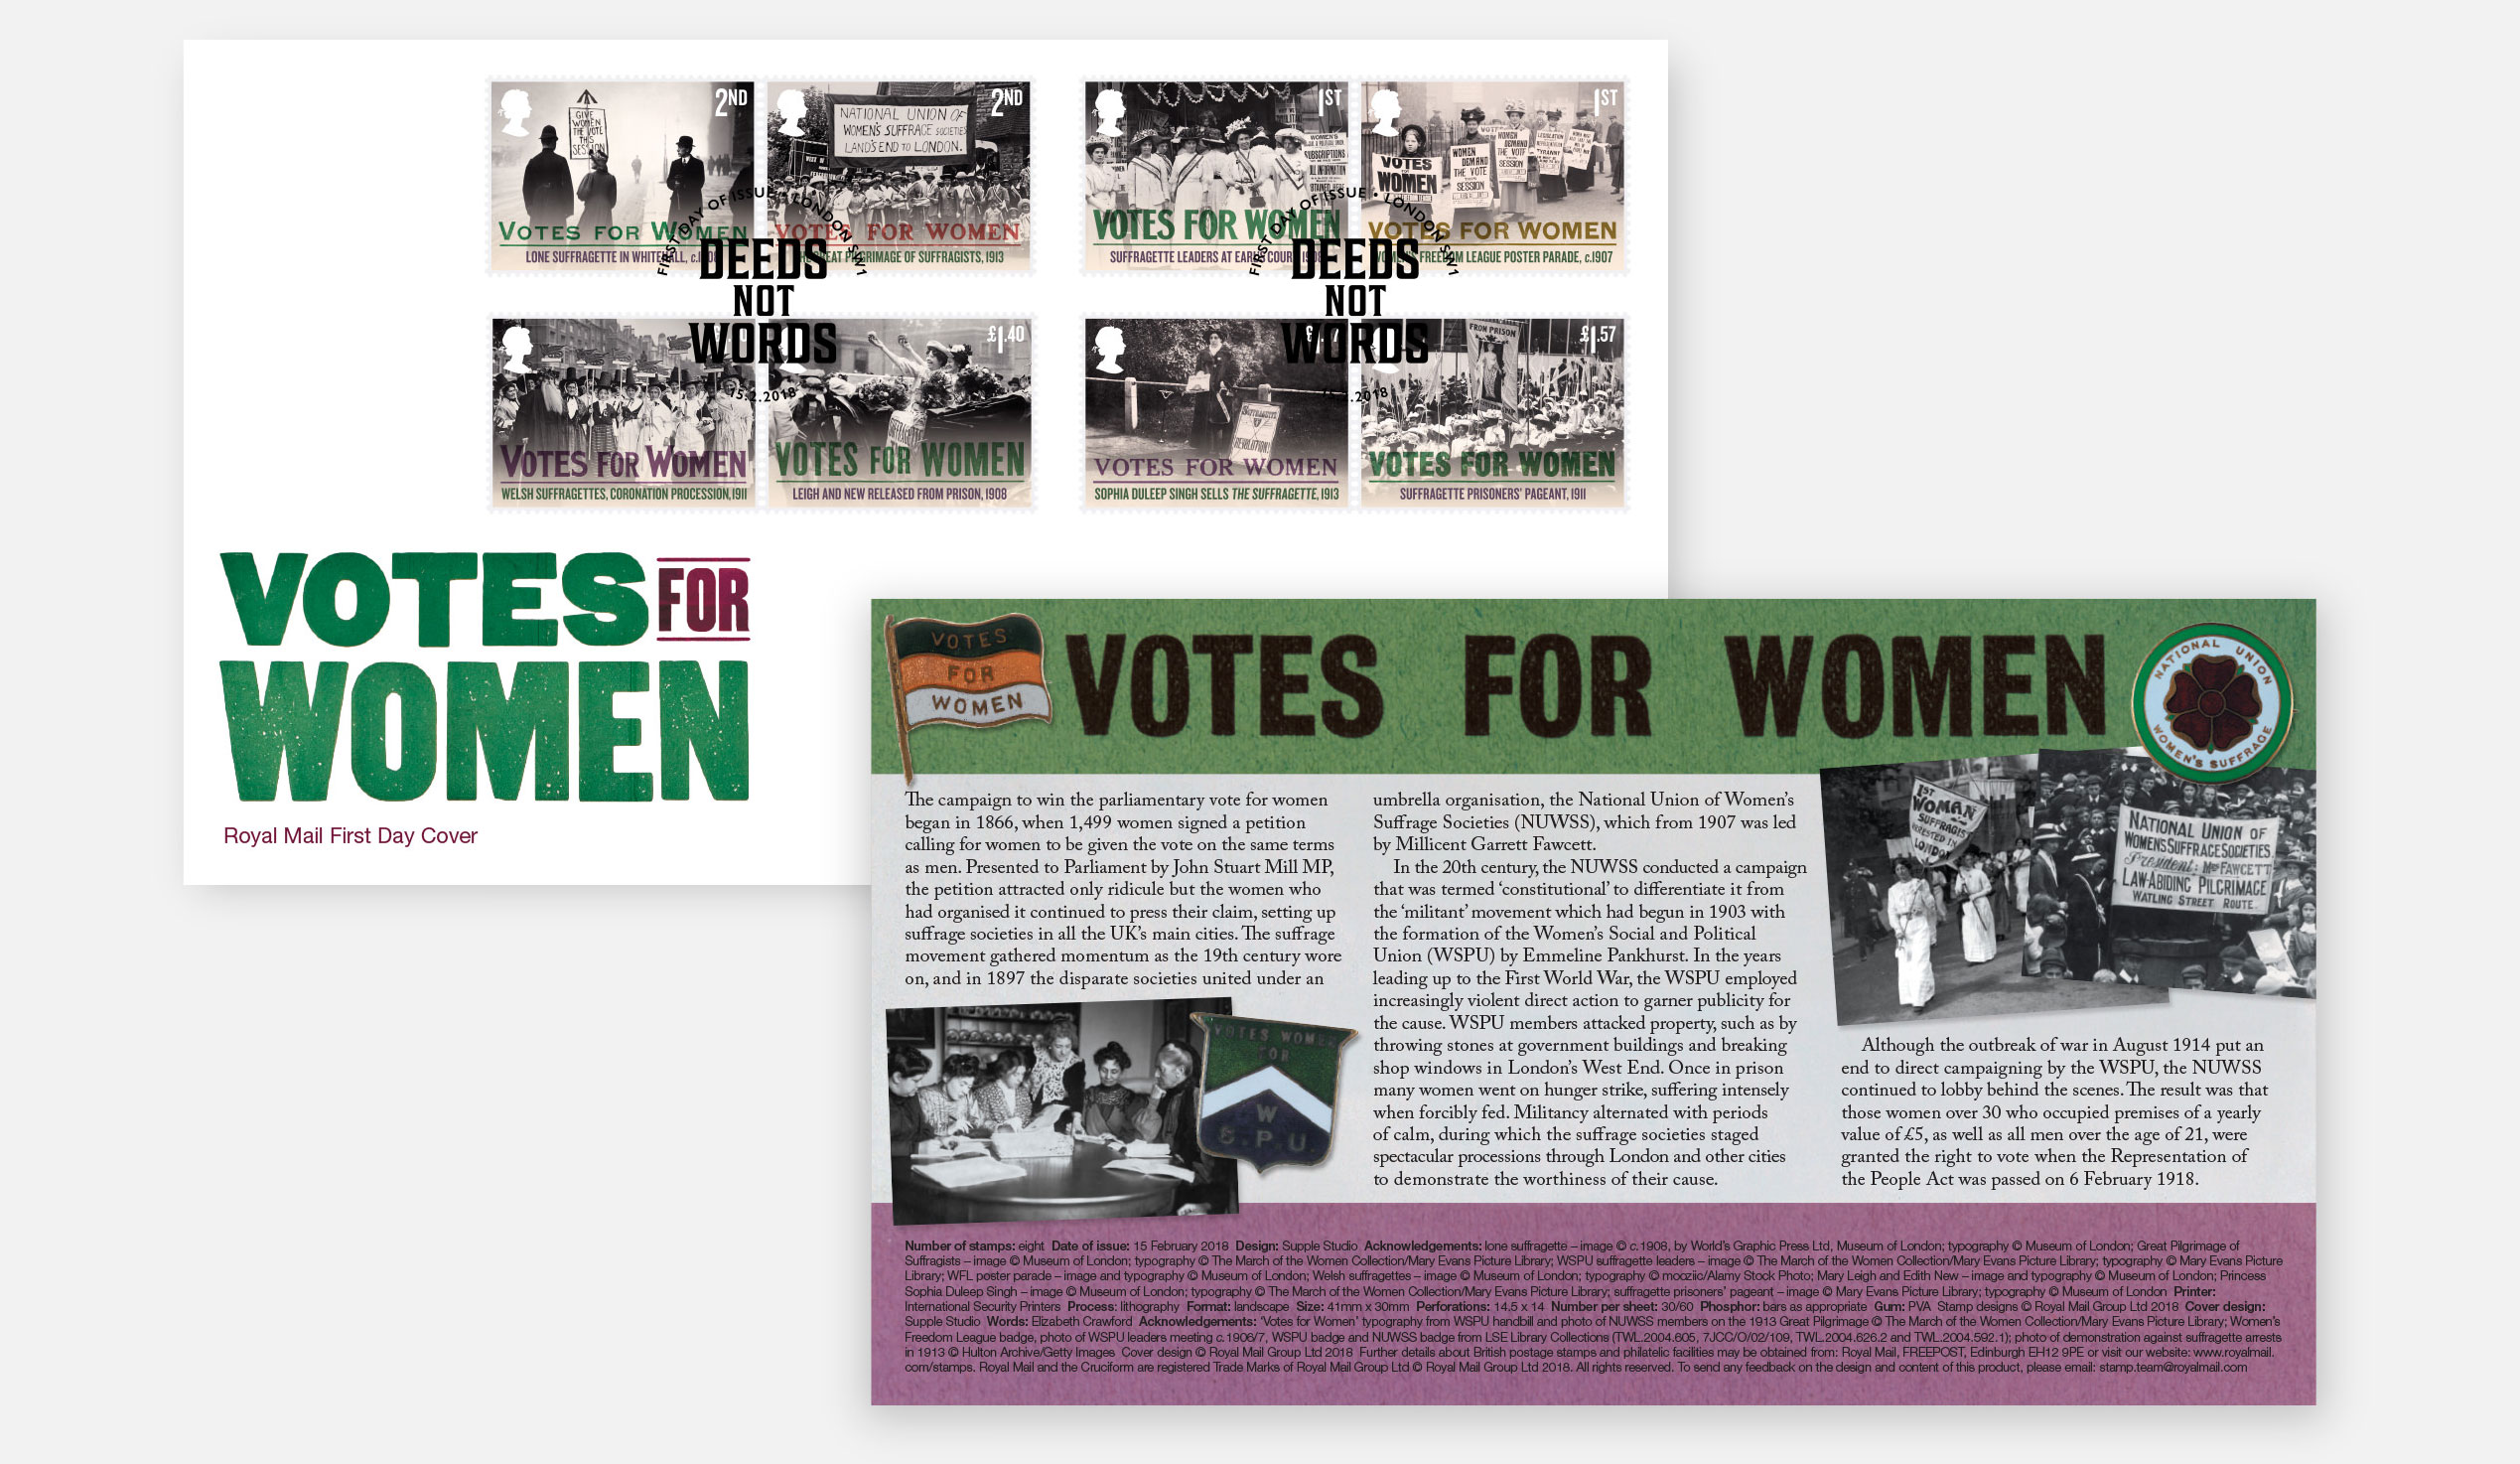 Votes for Women stamps for the Royal Mai